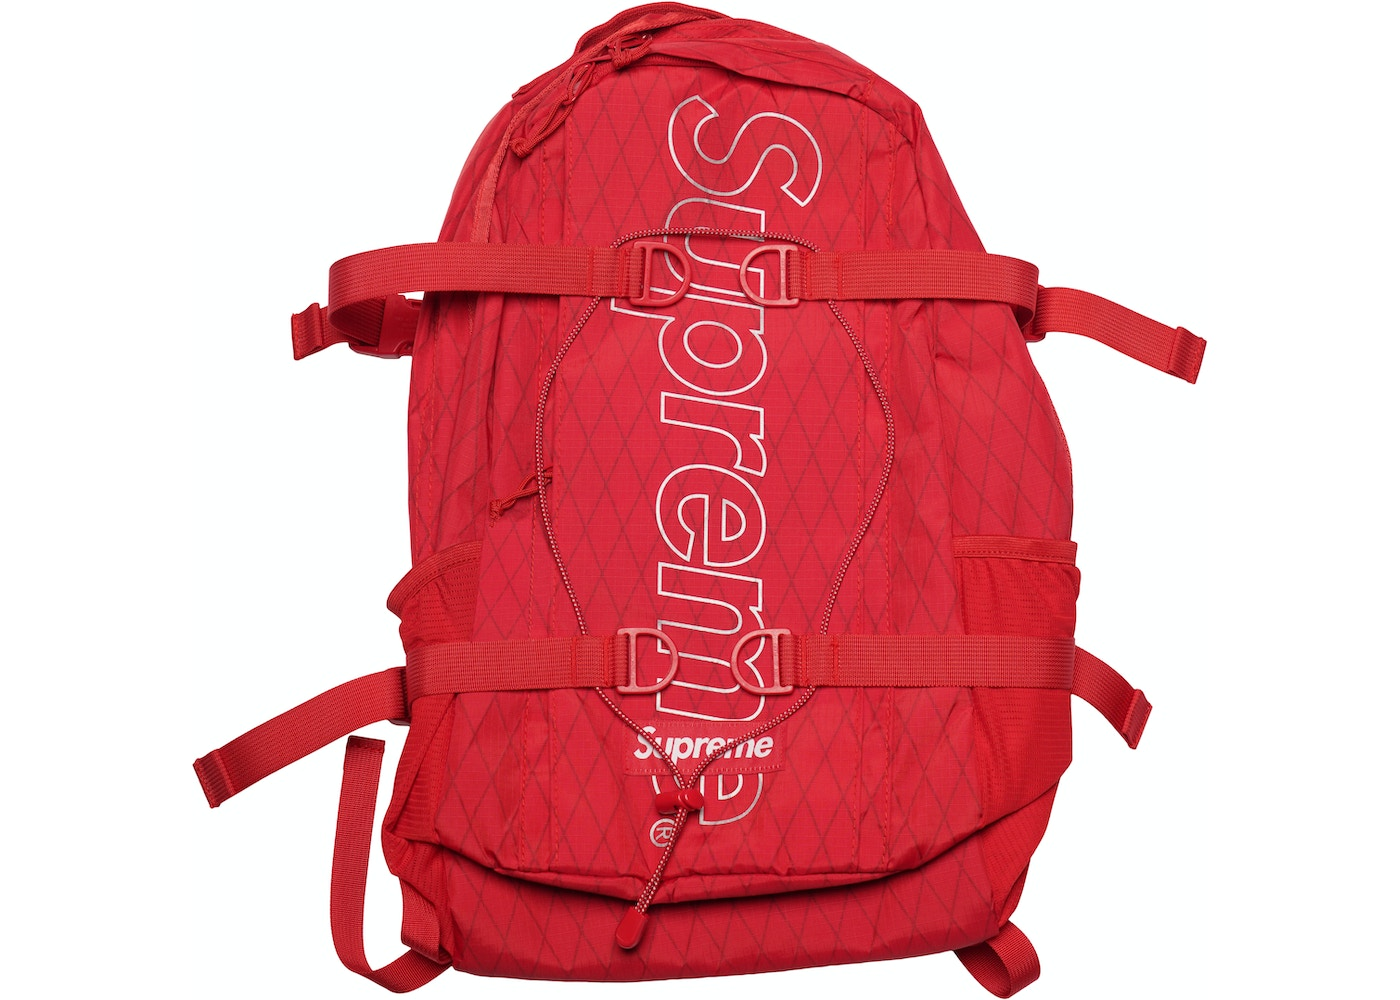 buy online f3521 7b003 Supreme Backpack (FW18) Red - FW18